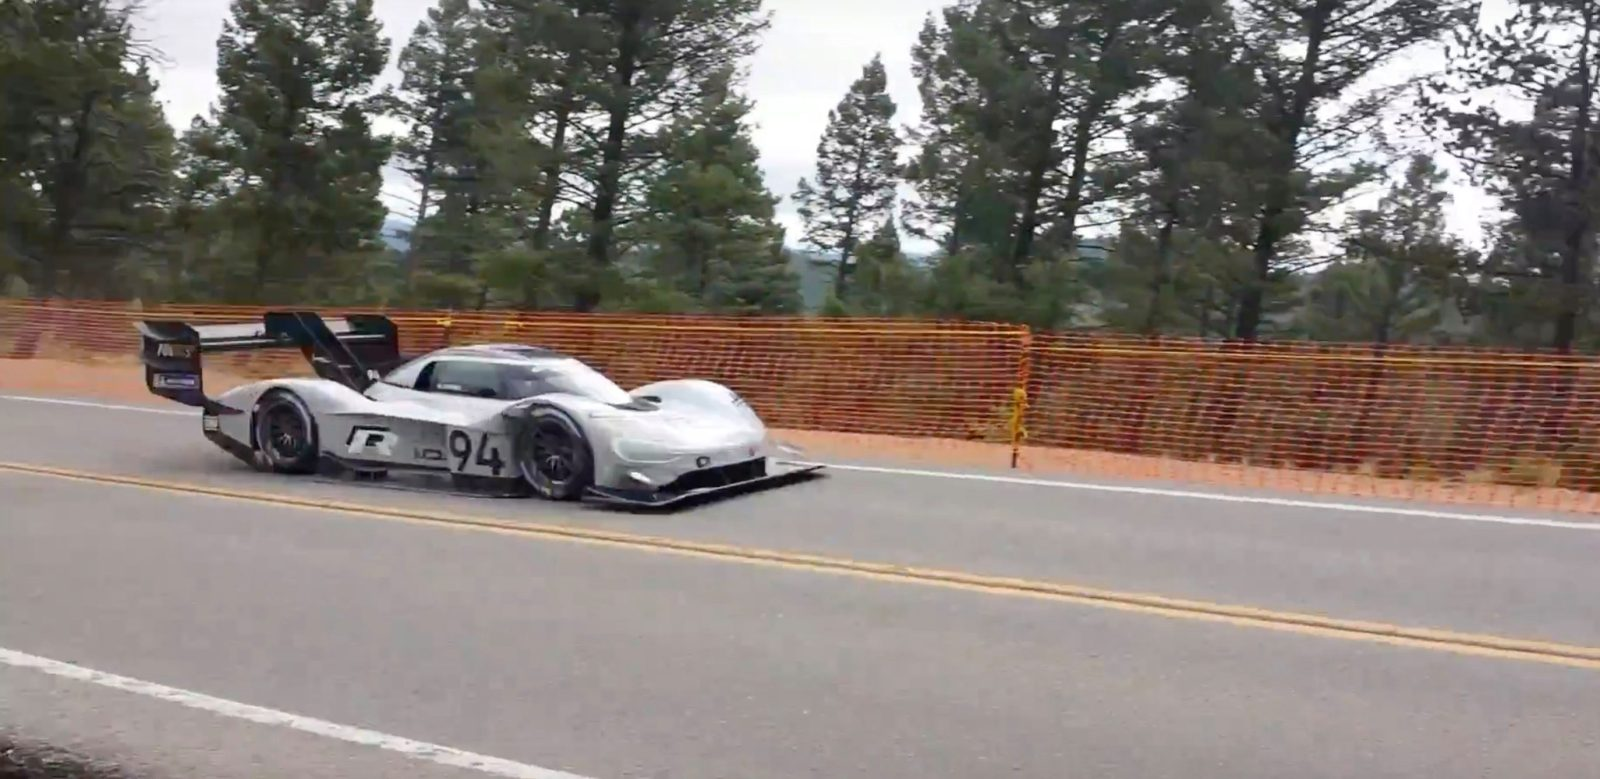 vw s all electric race car conquered pikes peak hill climb. Black Bedroom Furniture Sets. Home Design Ideas